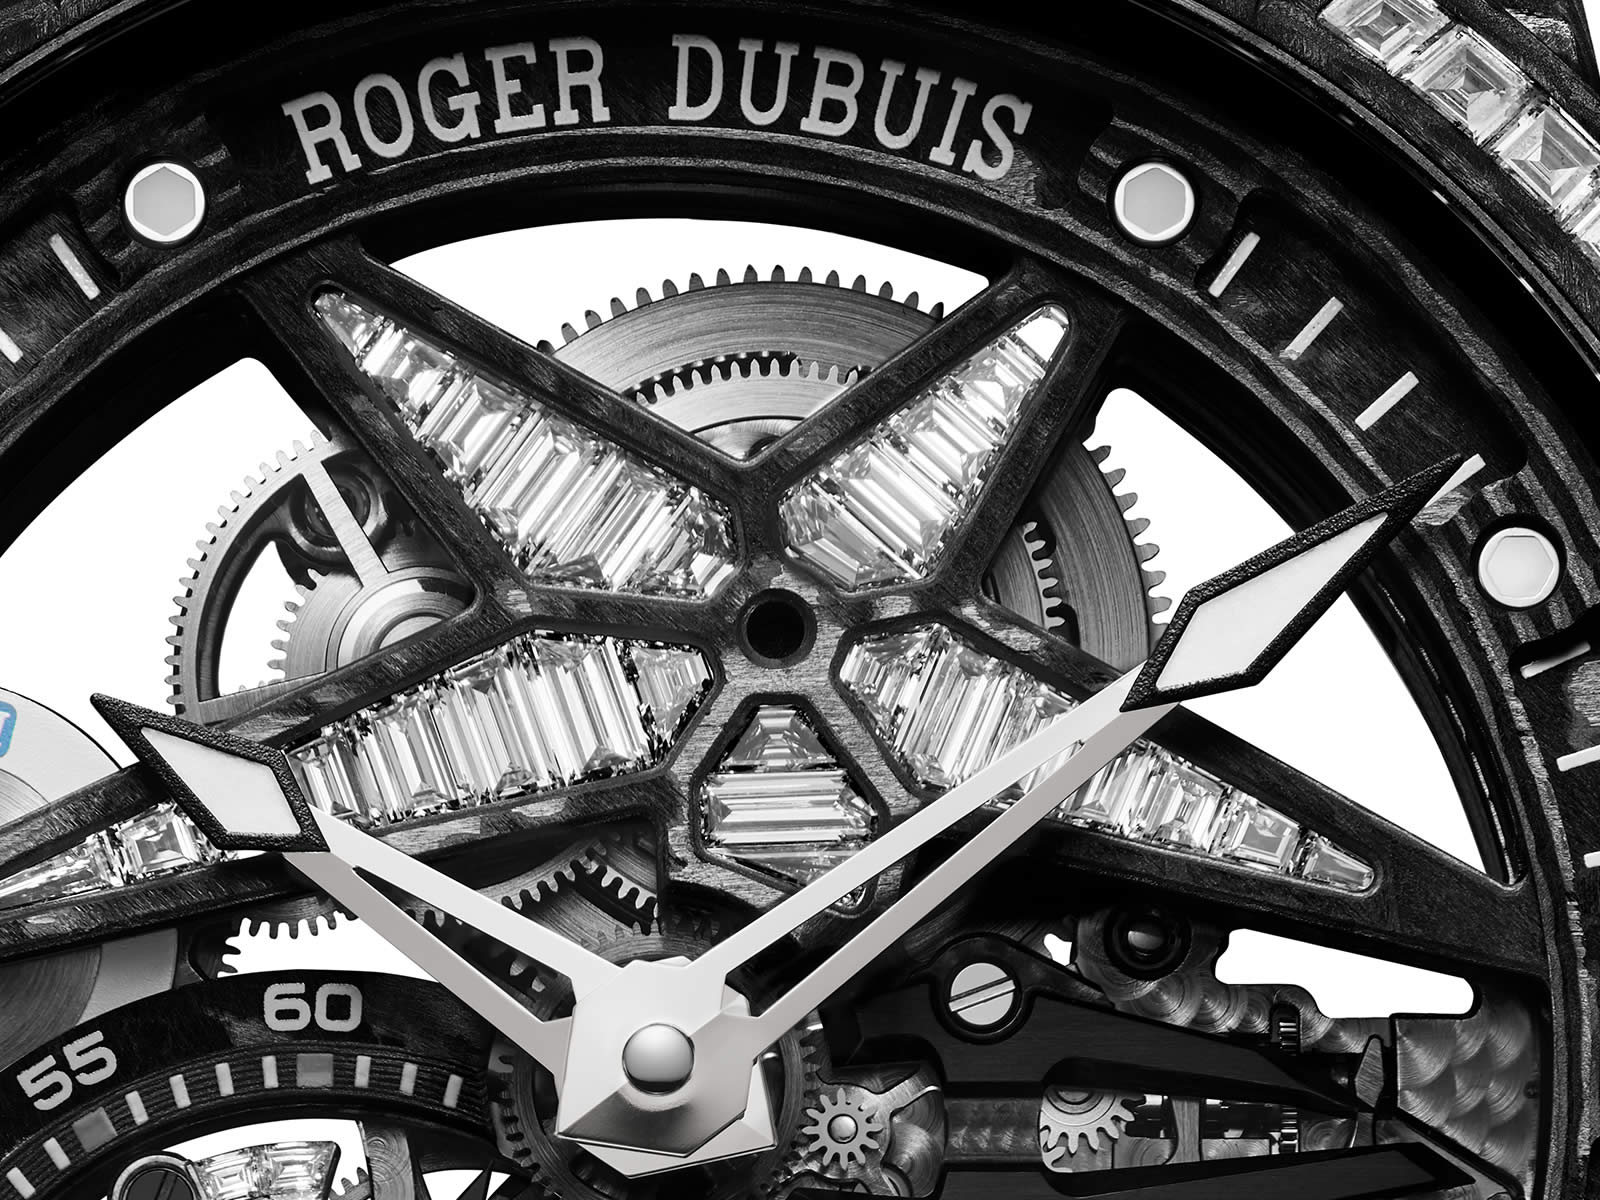 rddbex0675-roger-dubuis-excalibur-spider-ultimate-carbon-8-.jpg